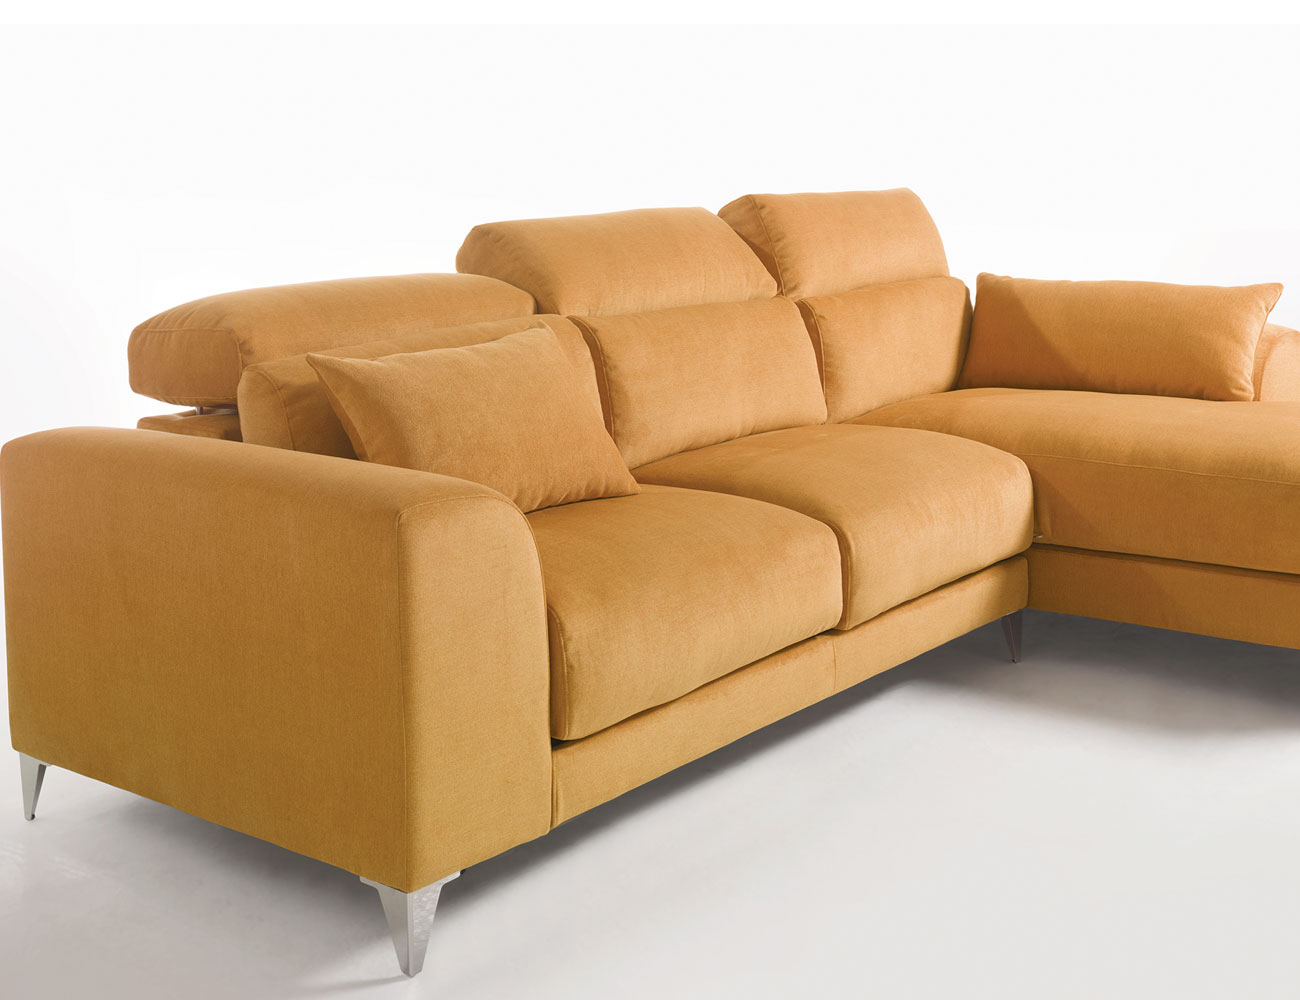 Sofa chaiselongue gran lujo decorativo patas altas amarillo 233